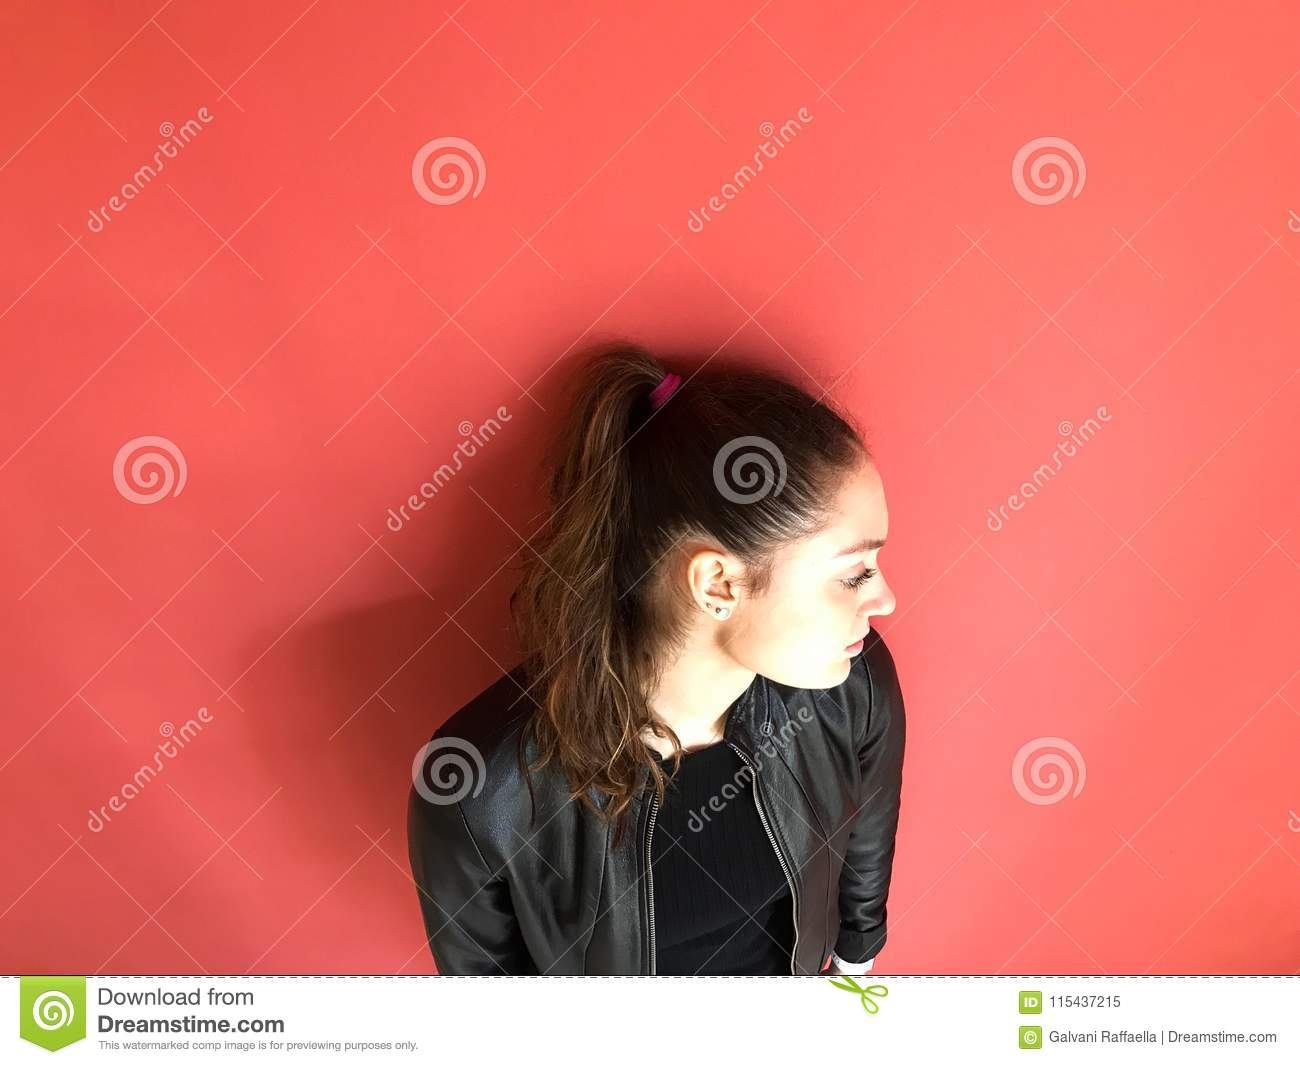 Young woman with ponytail portrait, coral color background